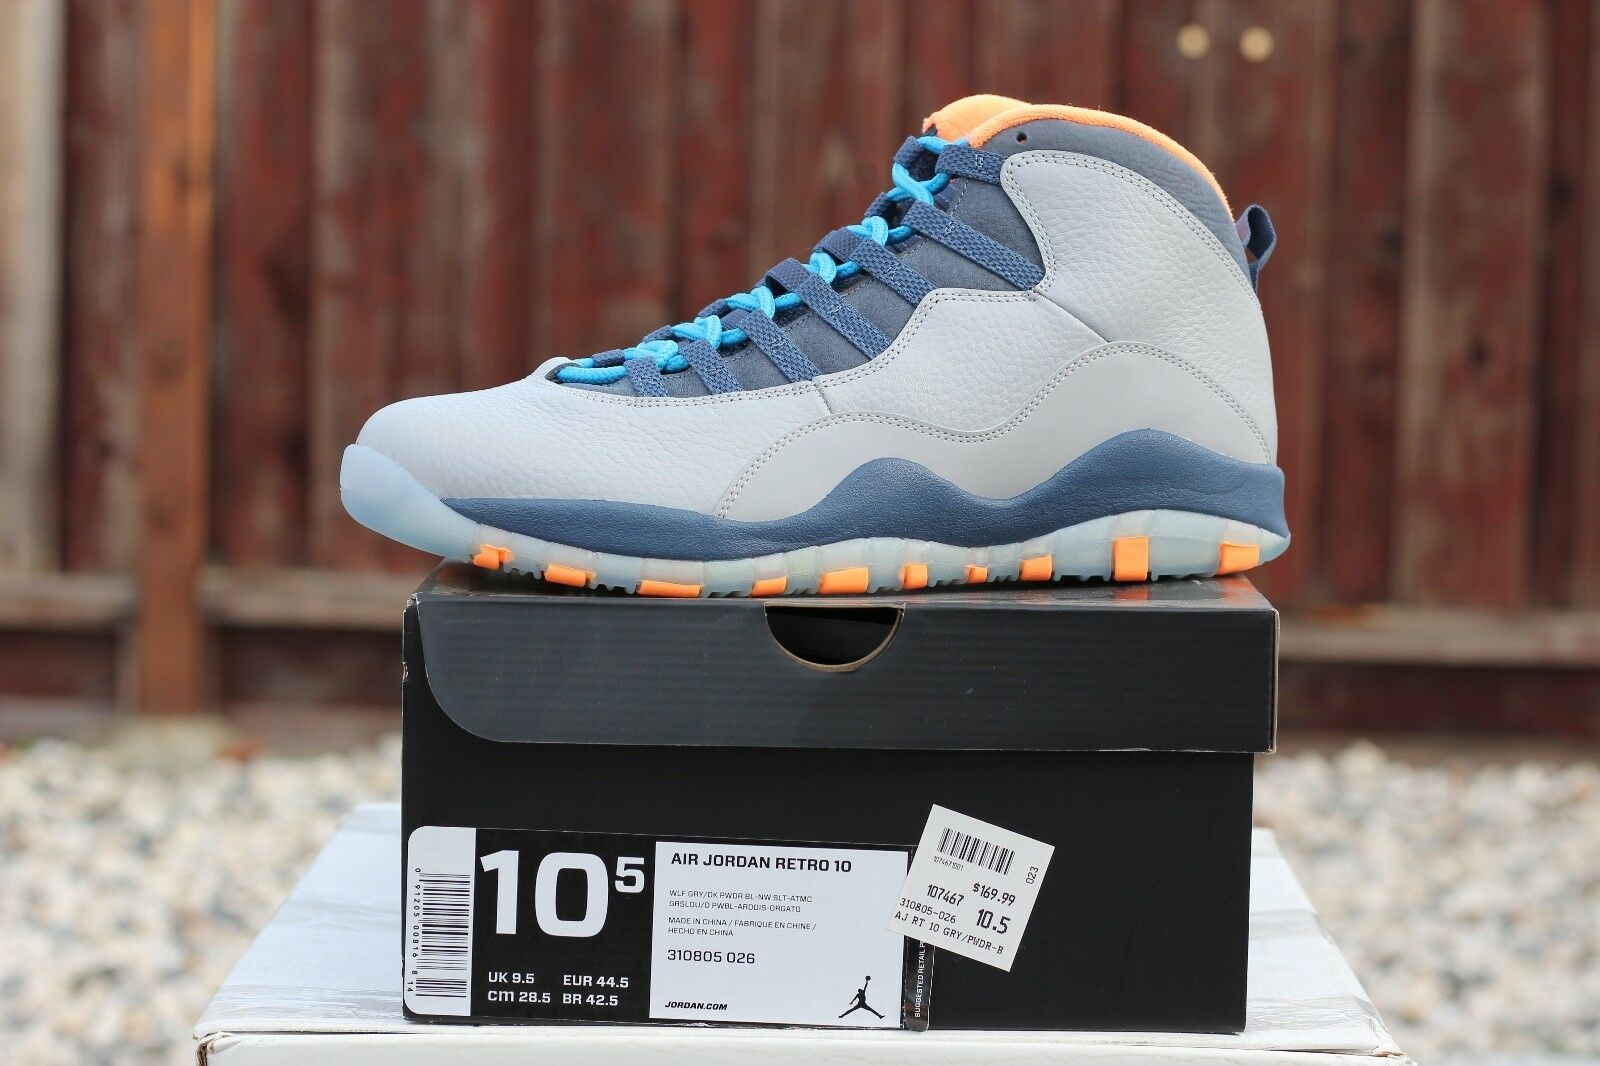 AIR JORDAN RETRO 10 X BOBCATS WOLF GREY/POWDER BLUE U.S. Size 10.5 (310805-026)